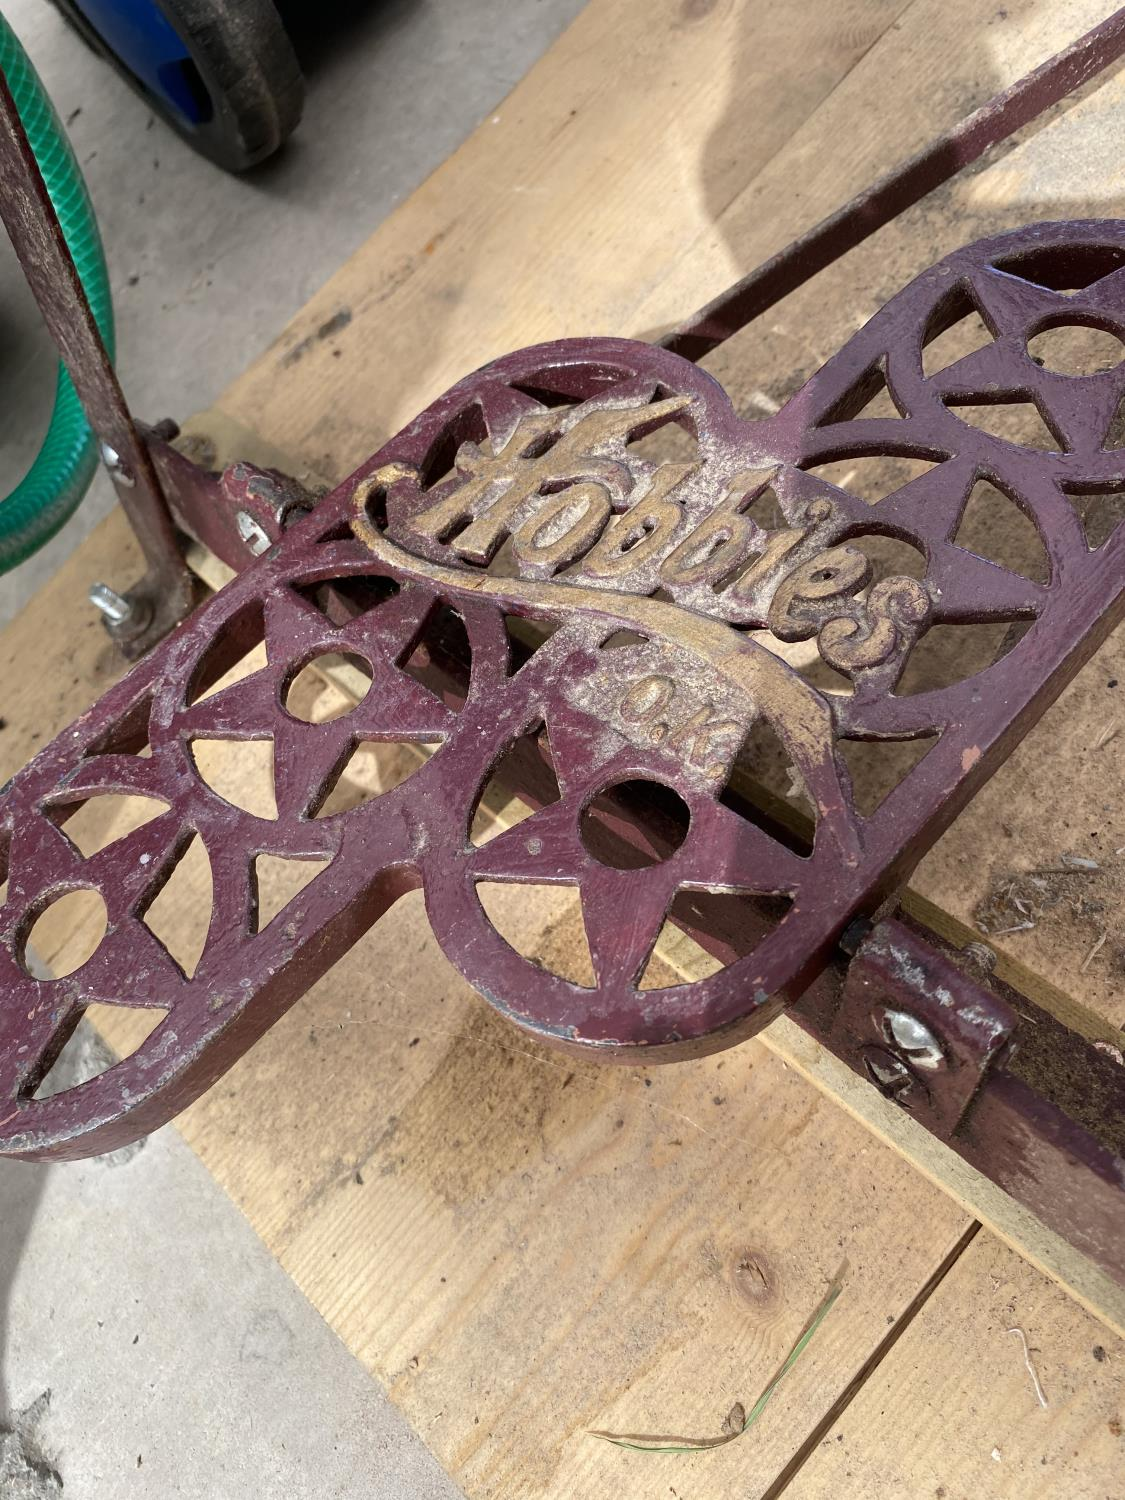 A HOBBIES TREDDLE SCROLL SAW - Image 4 of 4